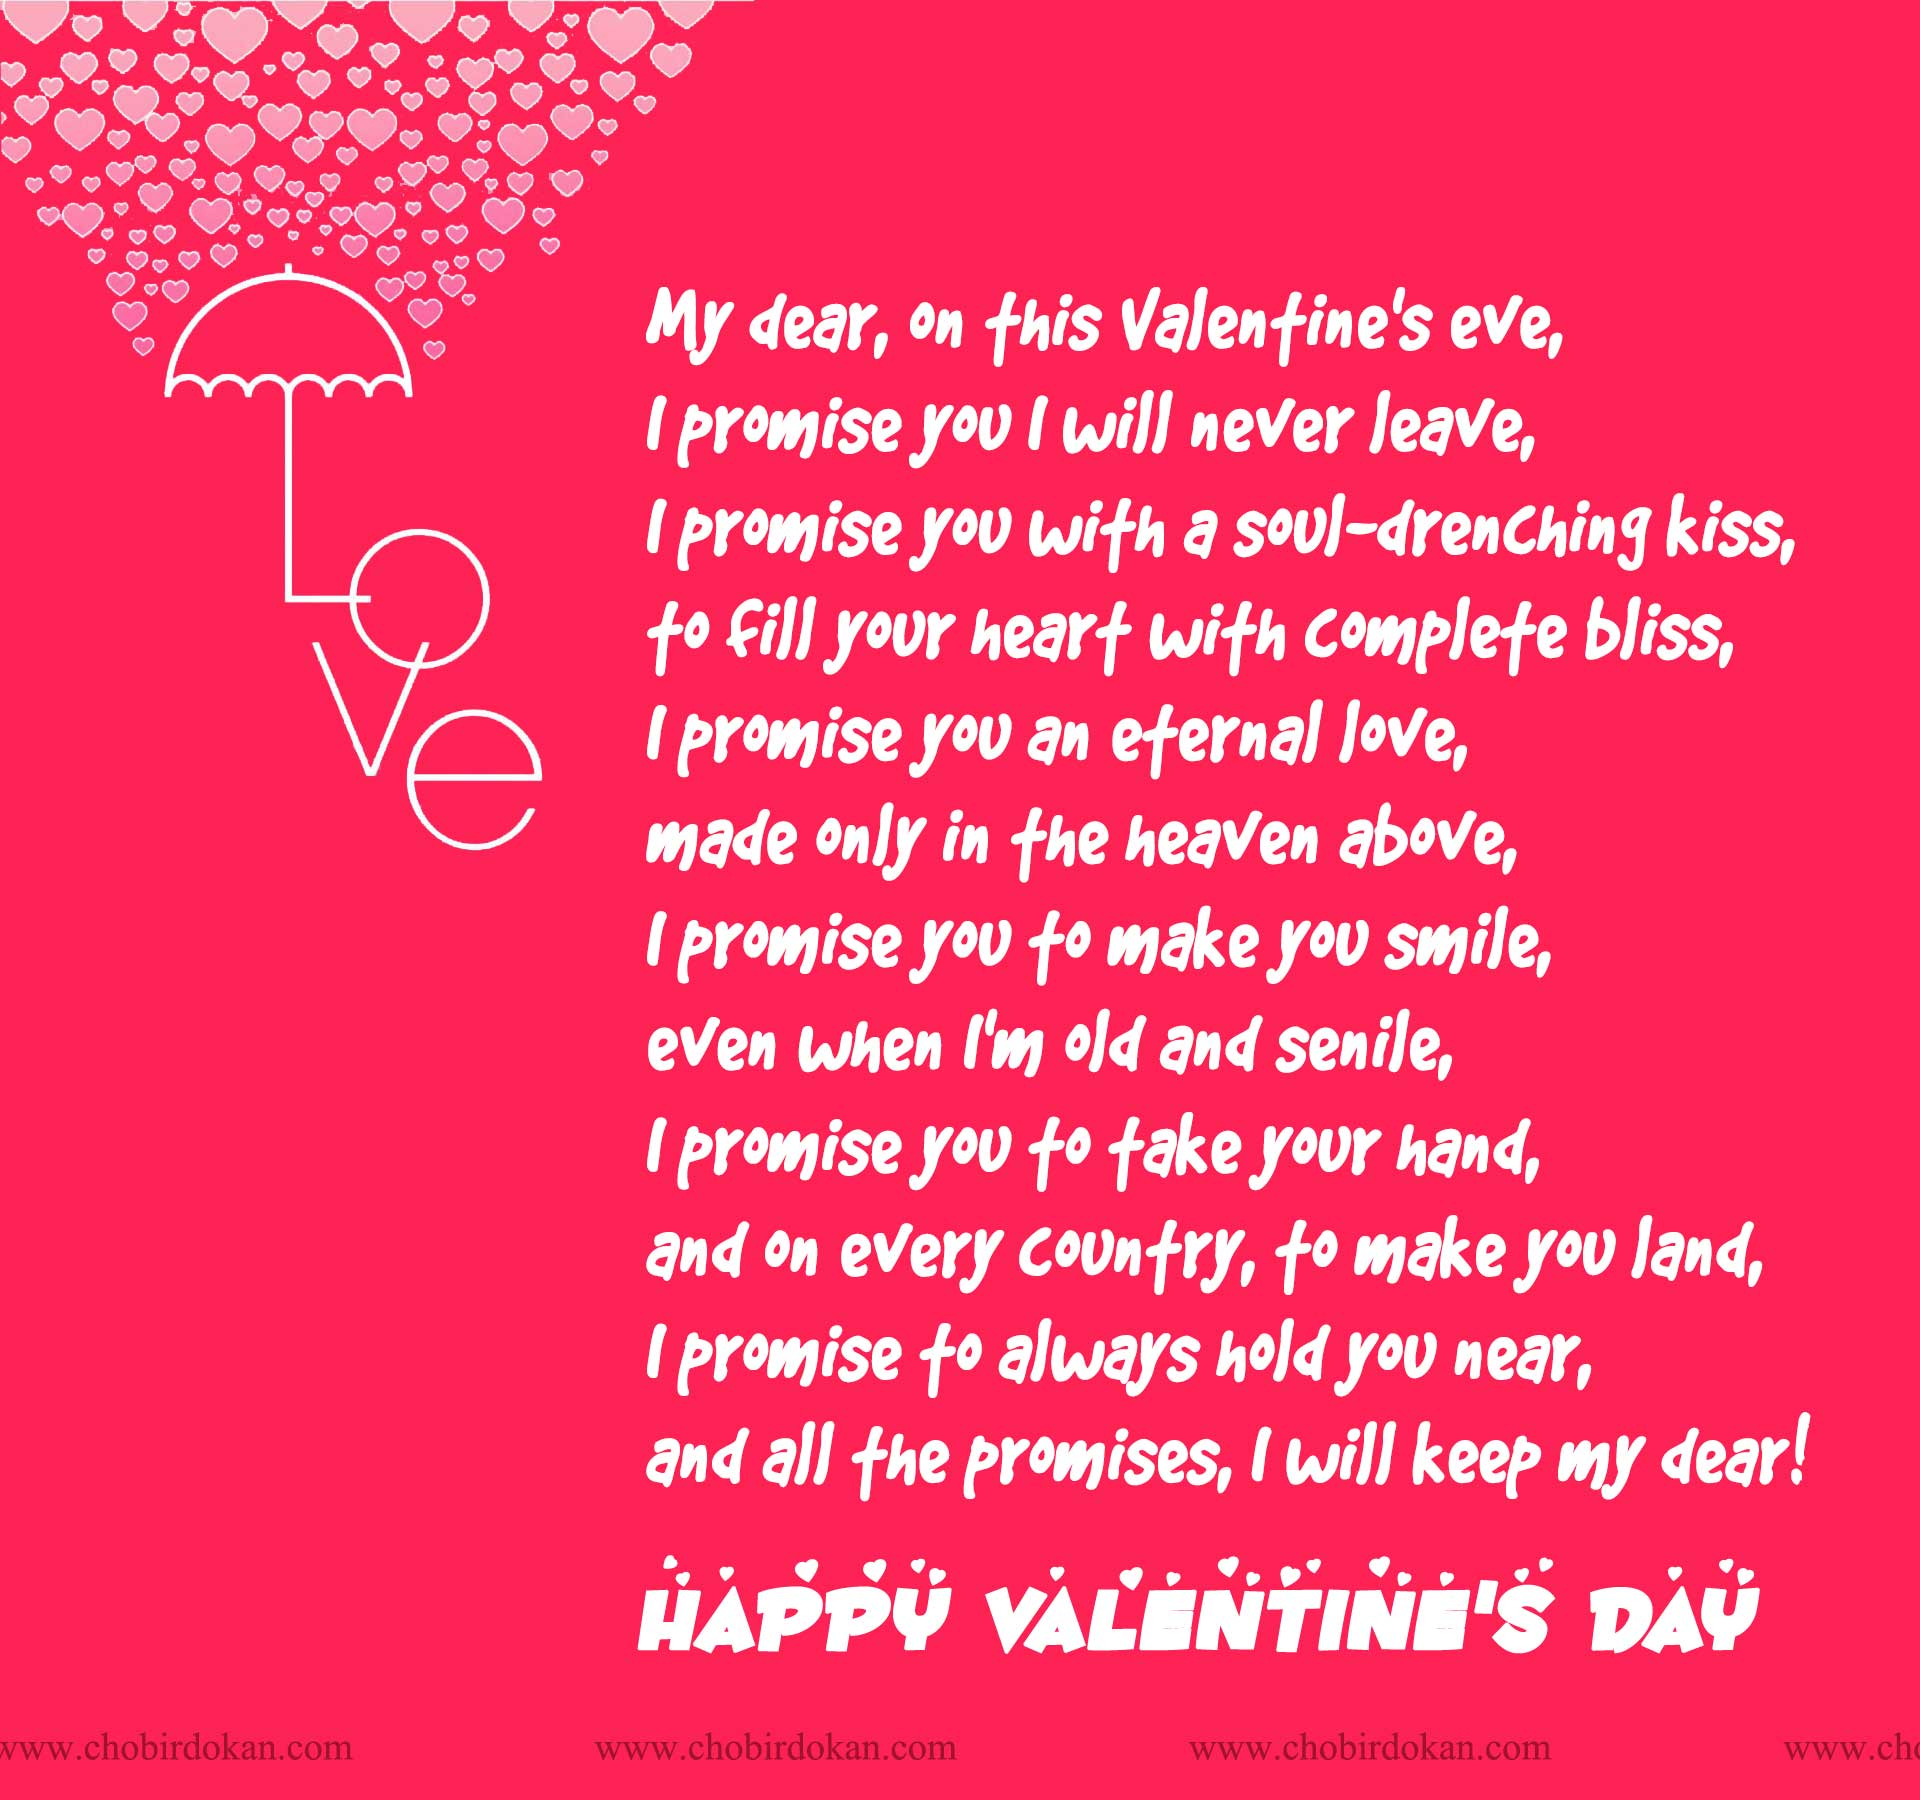 happy valentines day poems for her, for your girlfriend or wife, Ideas